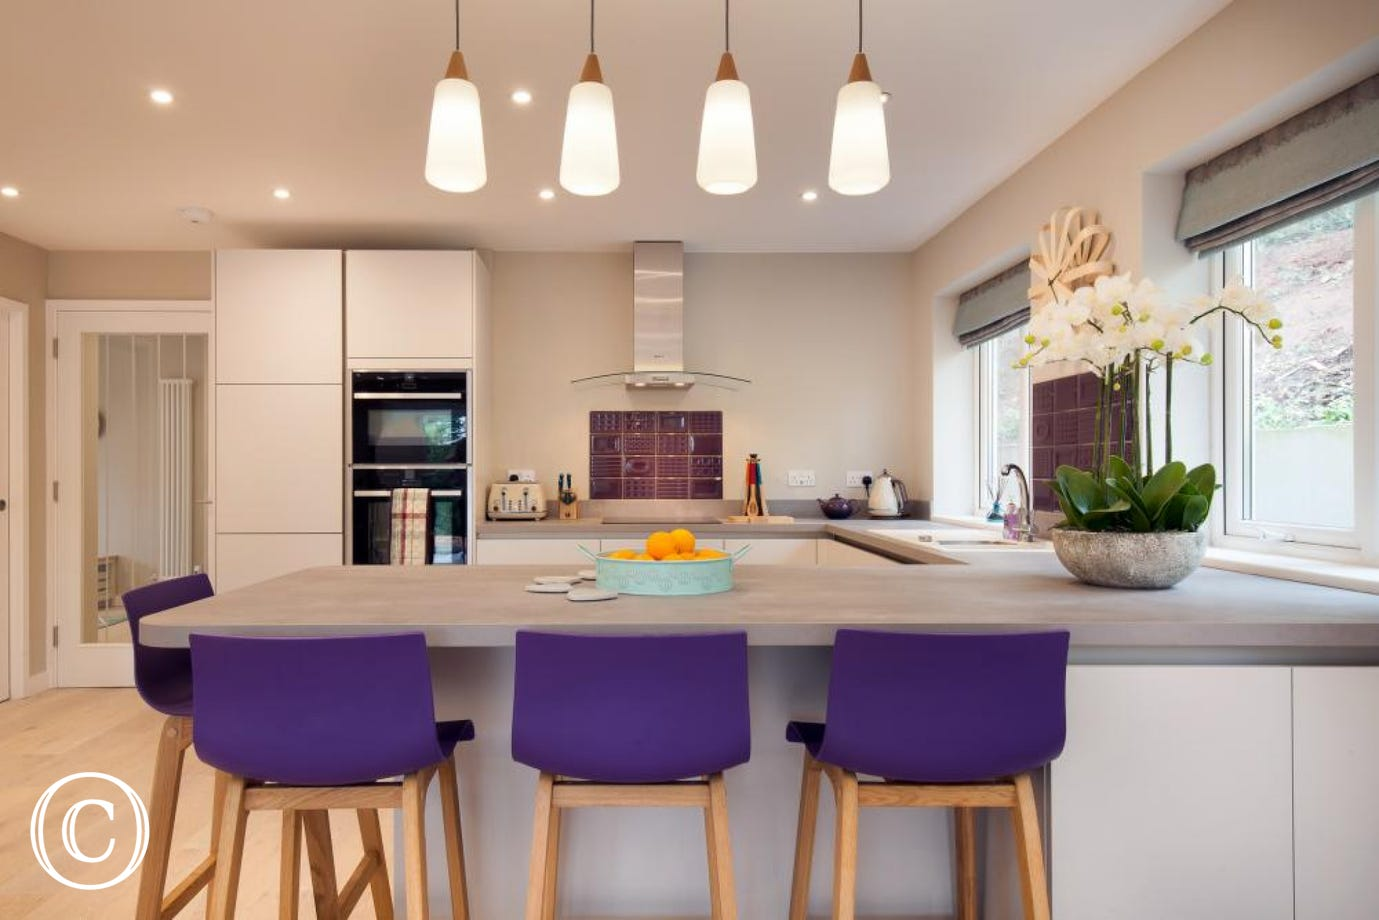 Brilliantly spacious kitchen and dining room!